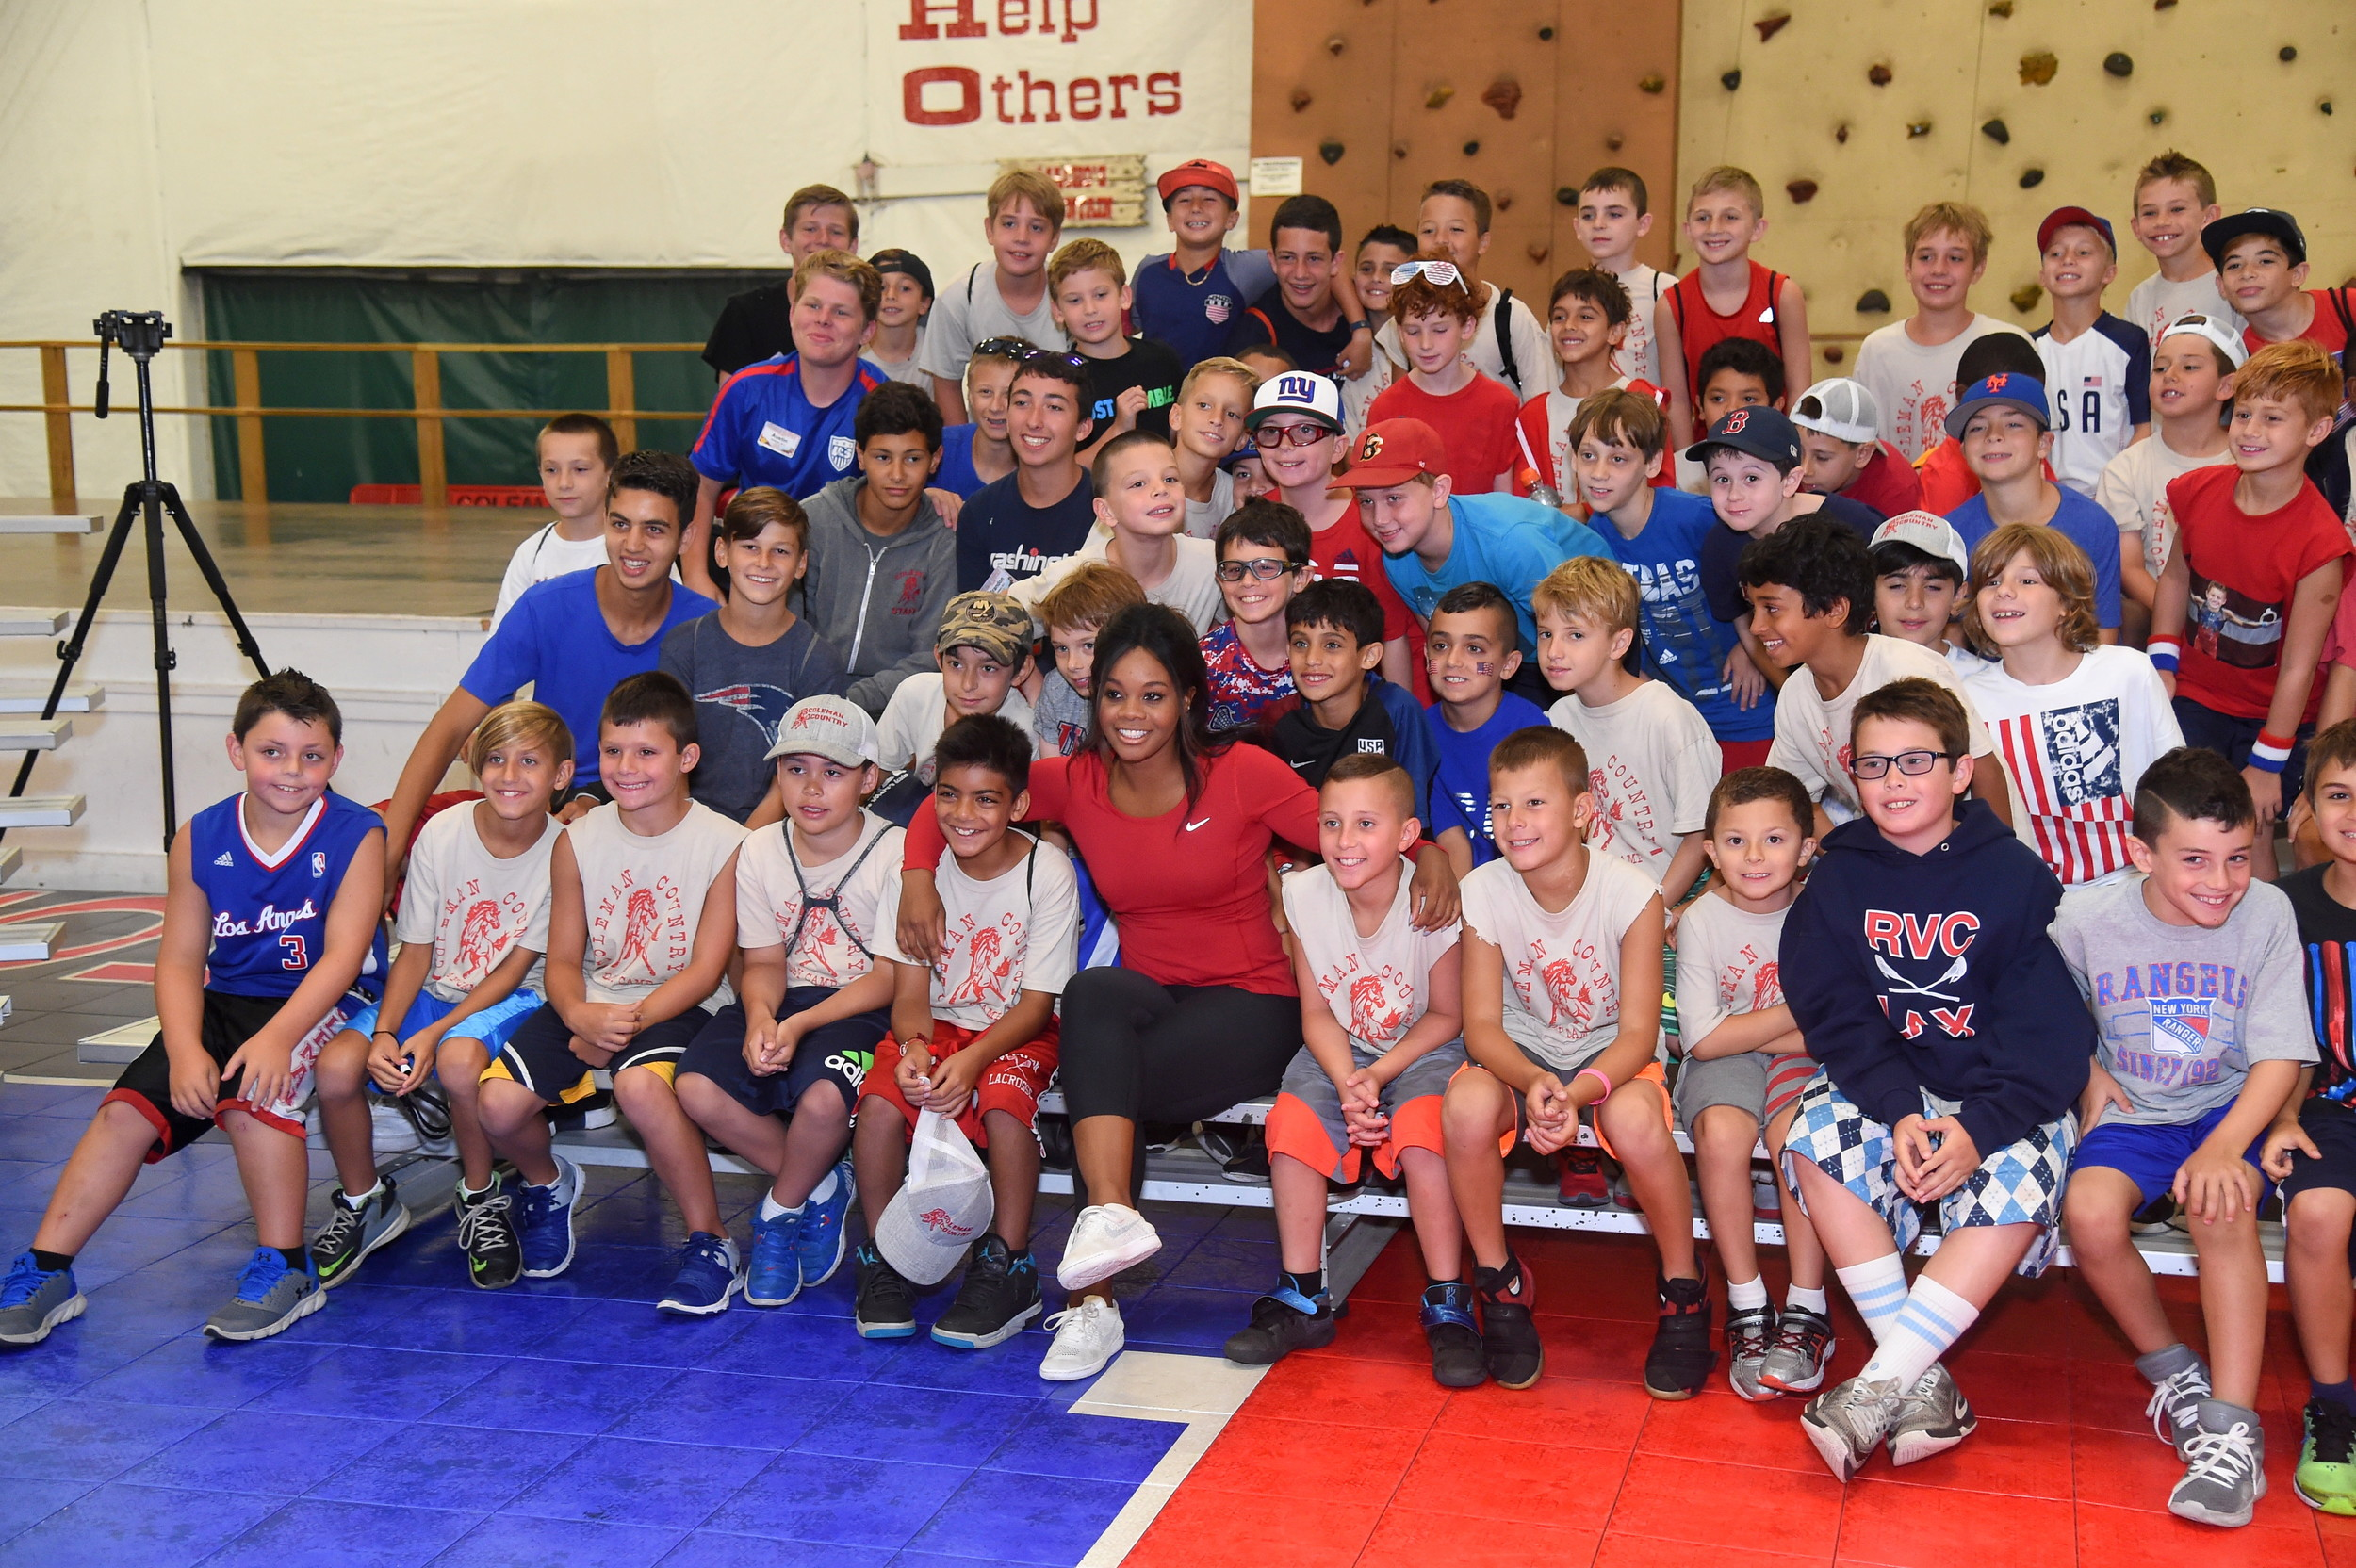 All the campers leaned in to share a photo with Olympian Gabby Douglas.